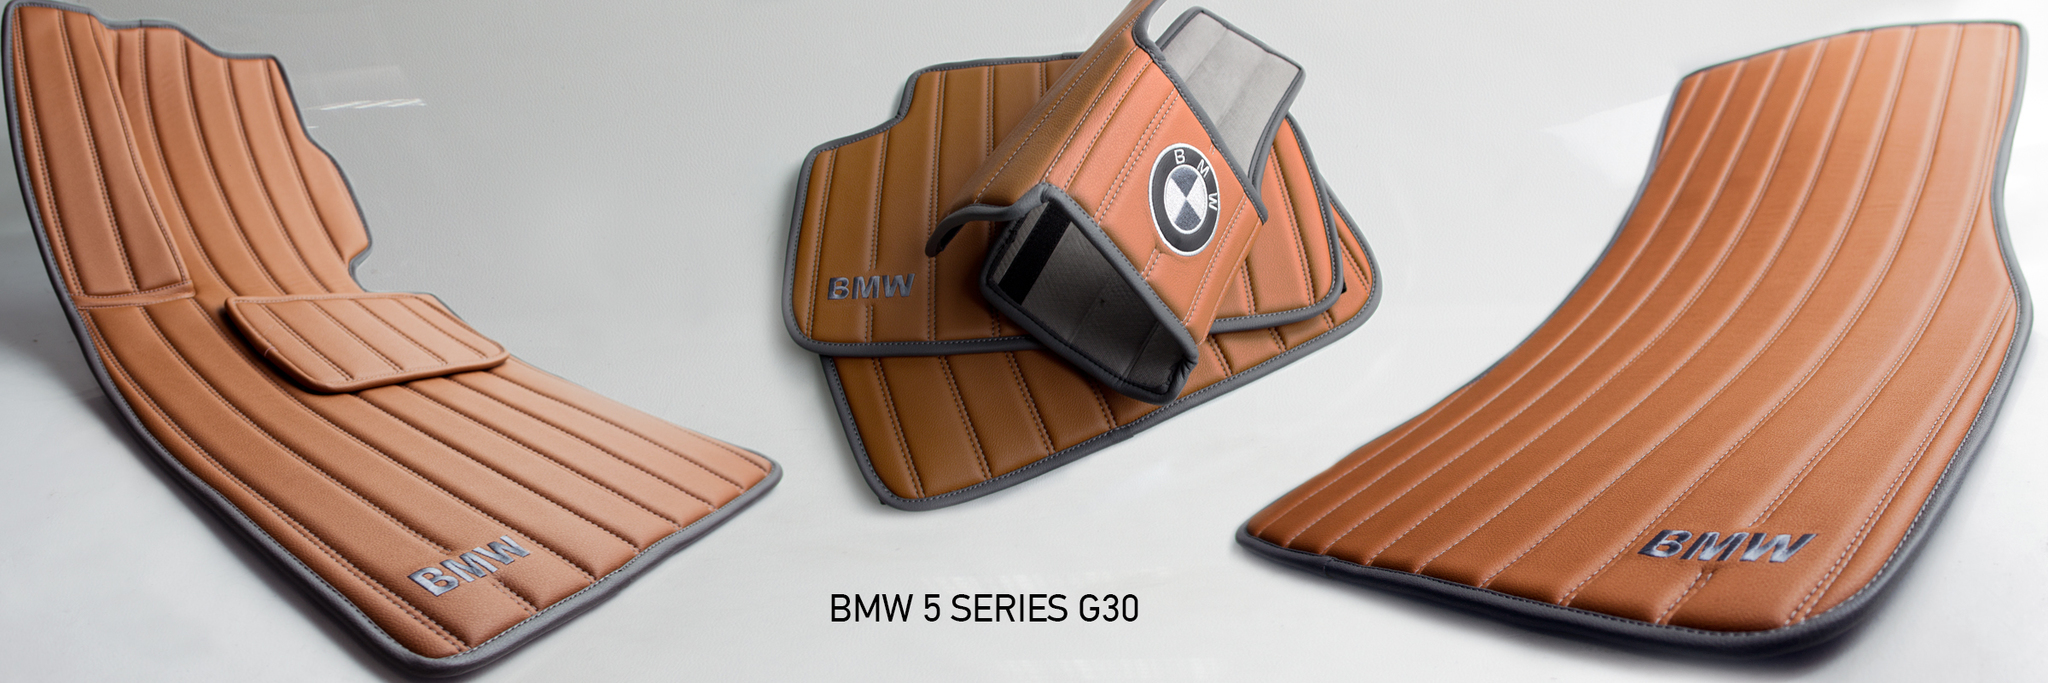 images-products-1-7880-232988360-BMW_5_SERIES_G30.jpg